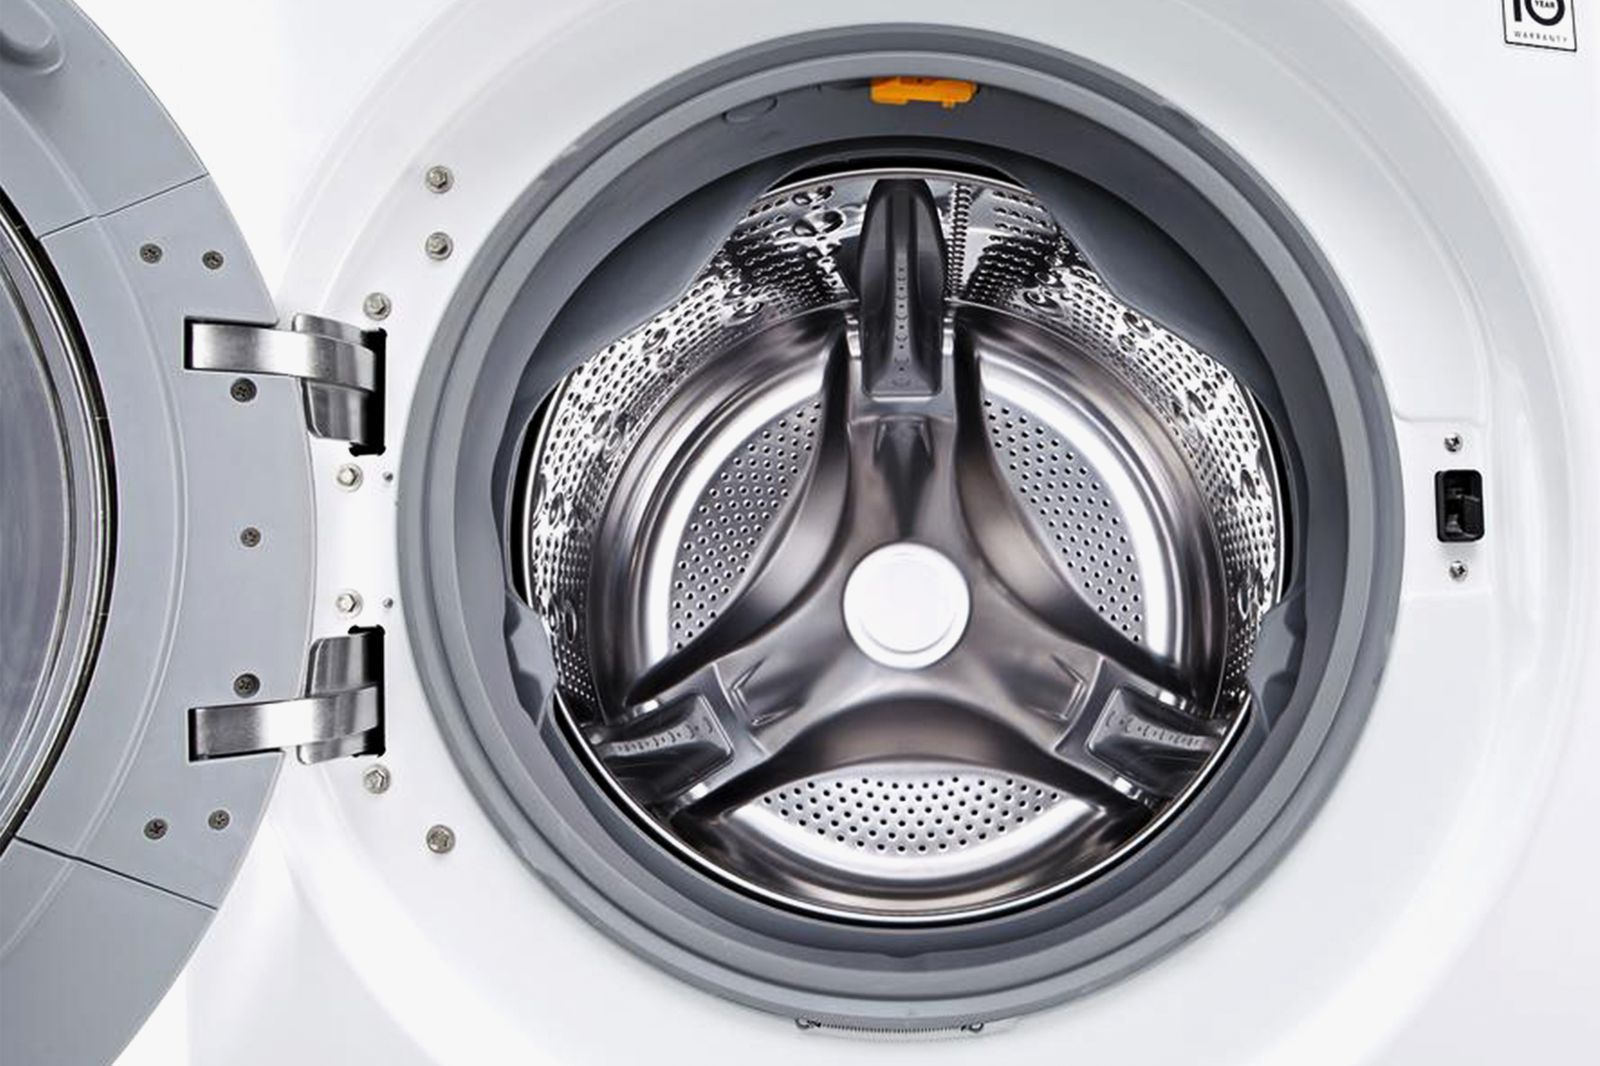 We Spent More Than 100 Hours Researching The Best Washing Machines